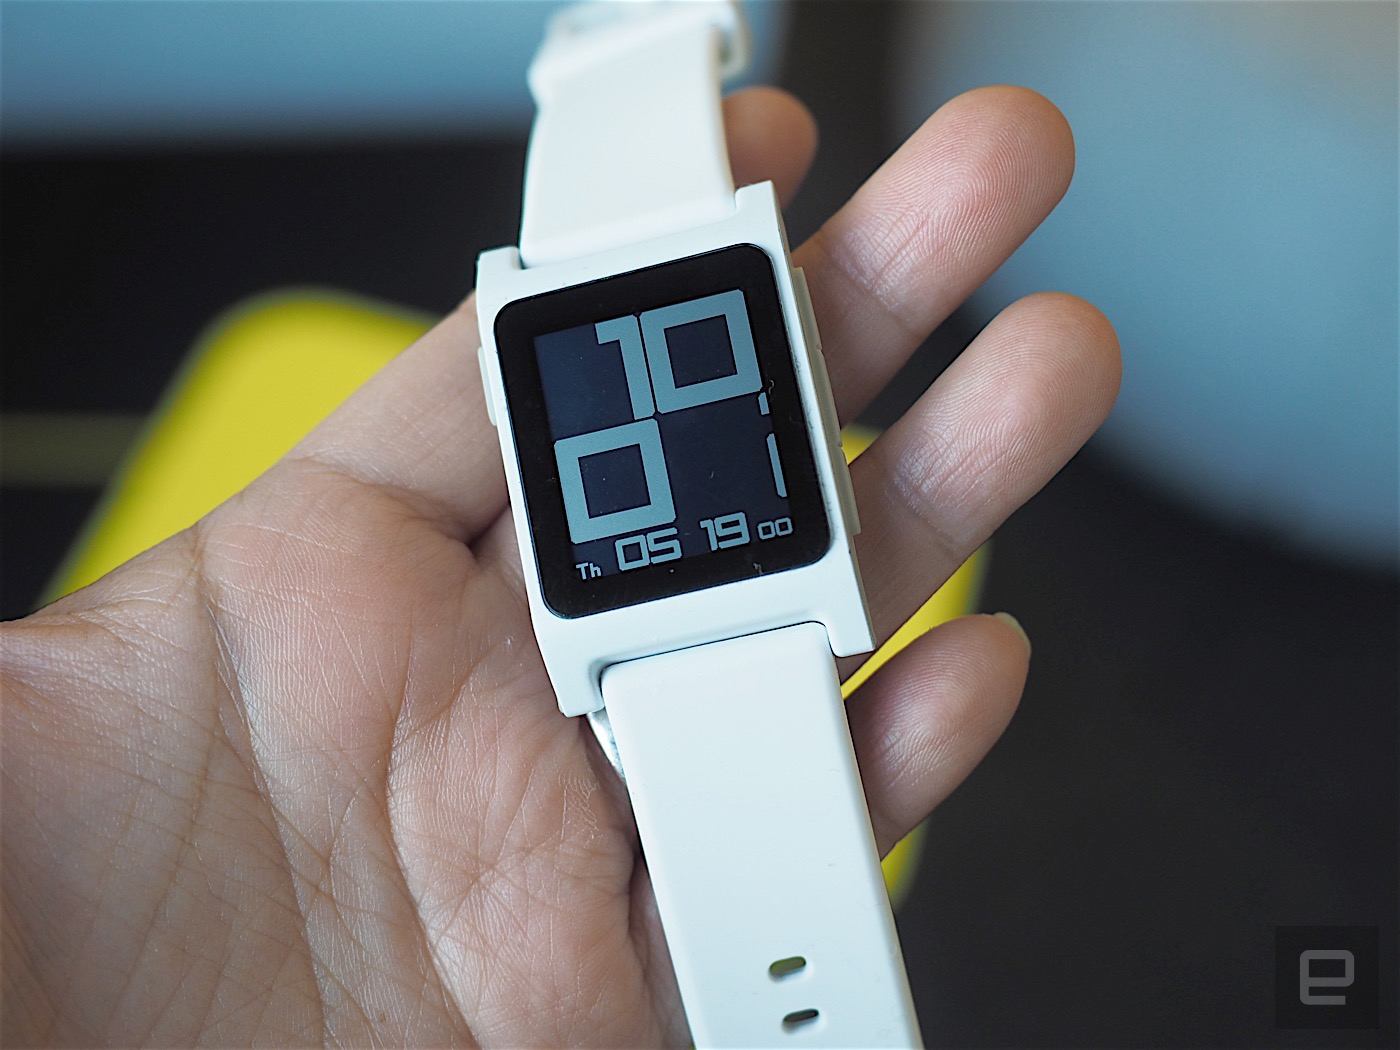 Pebble's new smartwatches focus on fitness